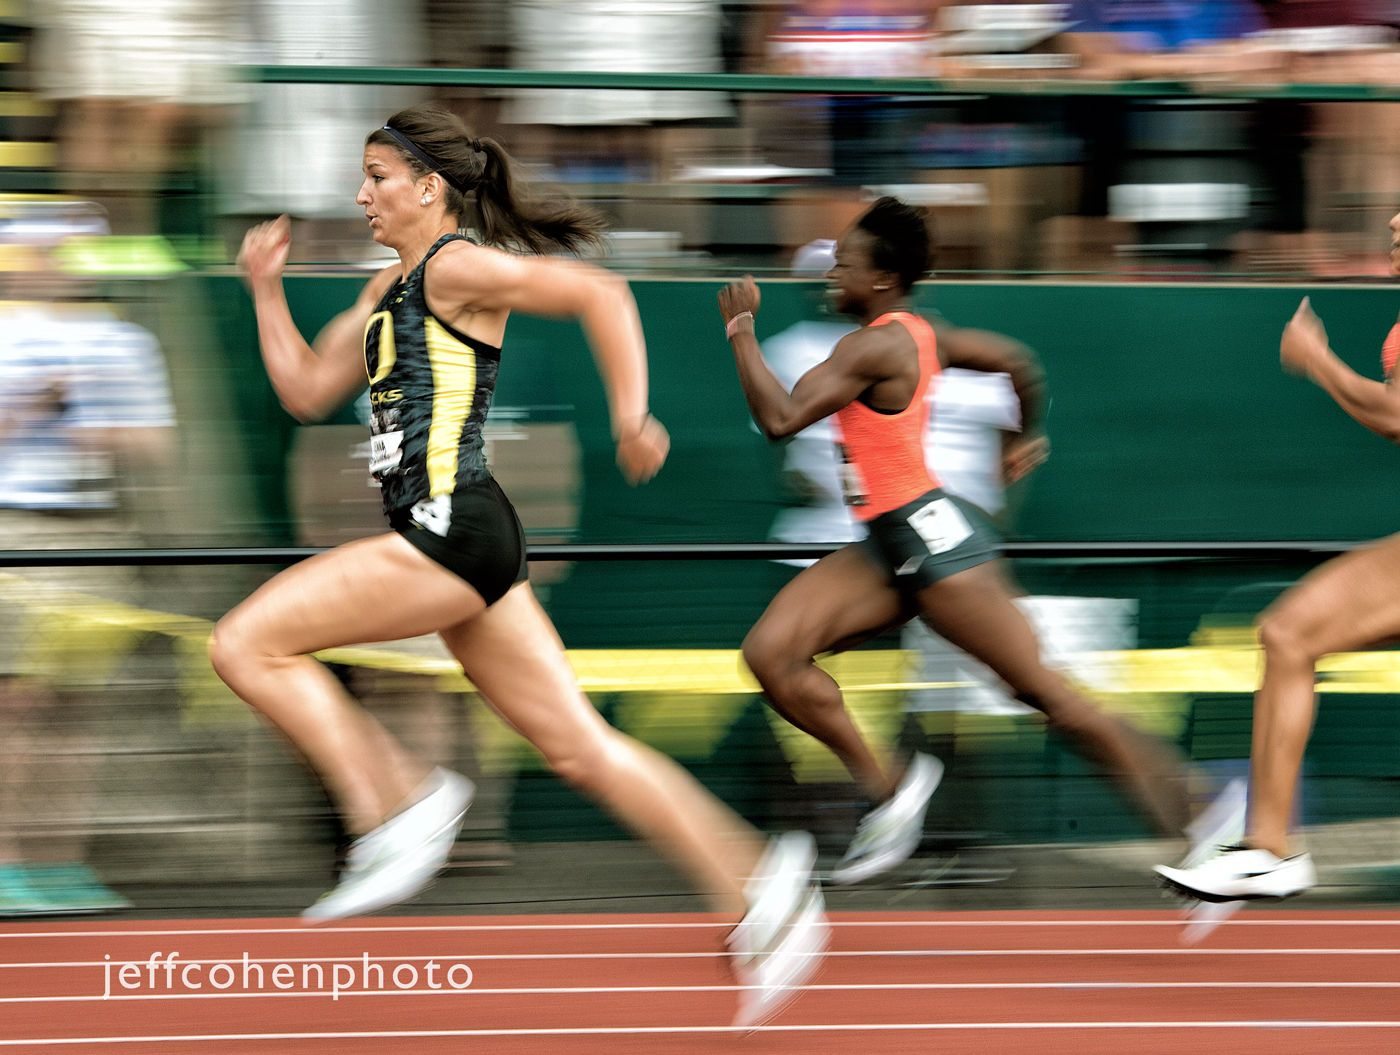 1r2015_usaoutdoors_day_4_prandini_200m_win_jeff_cohen_3416__web.jpg